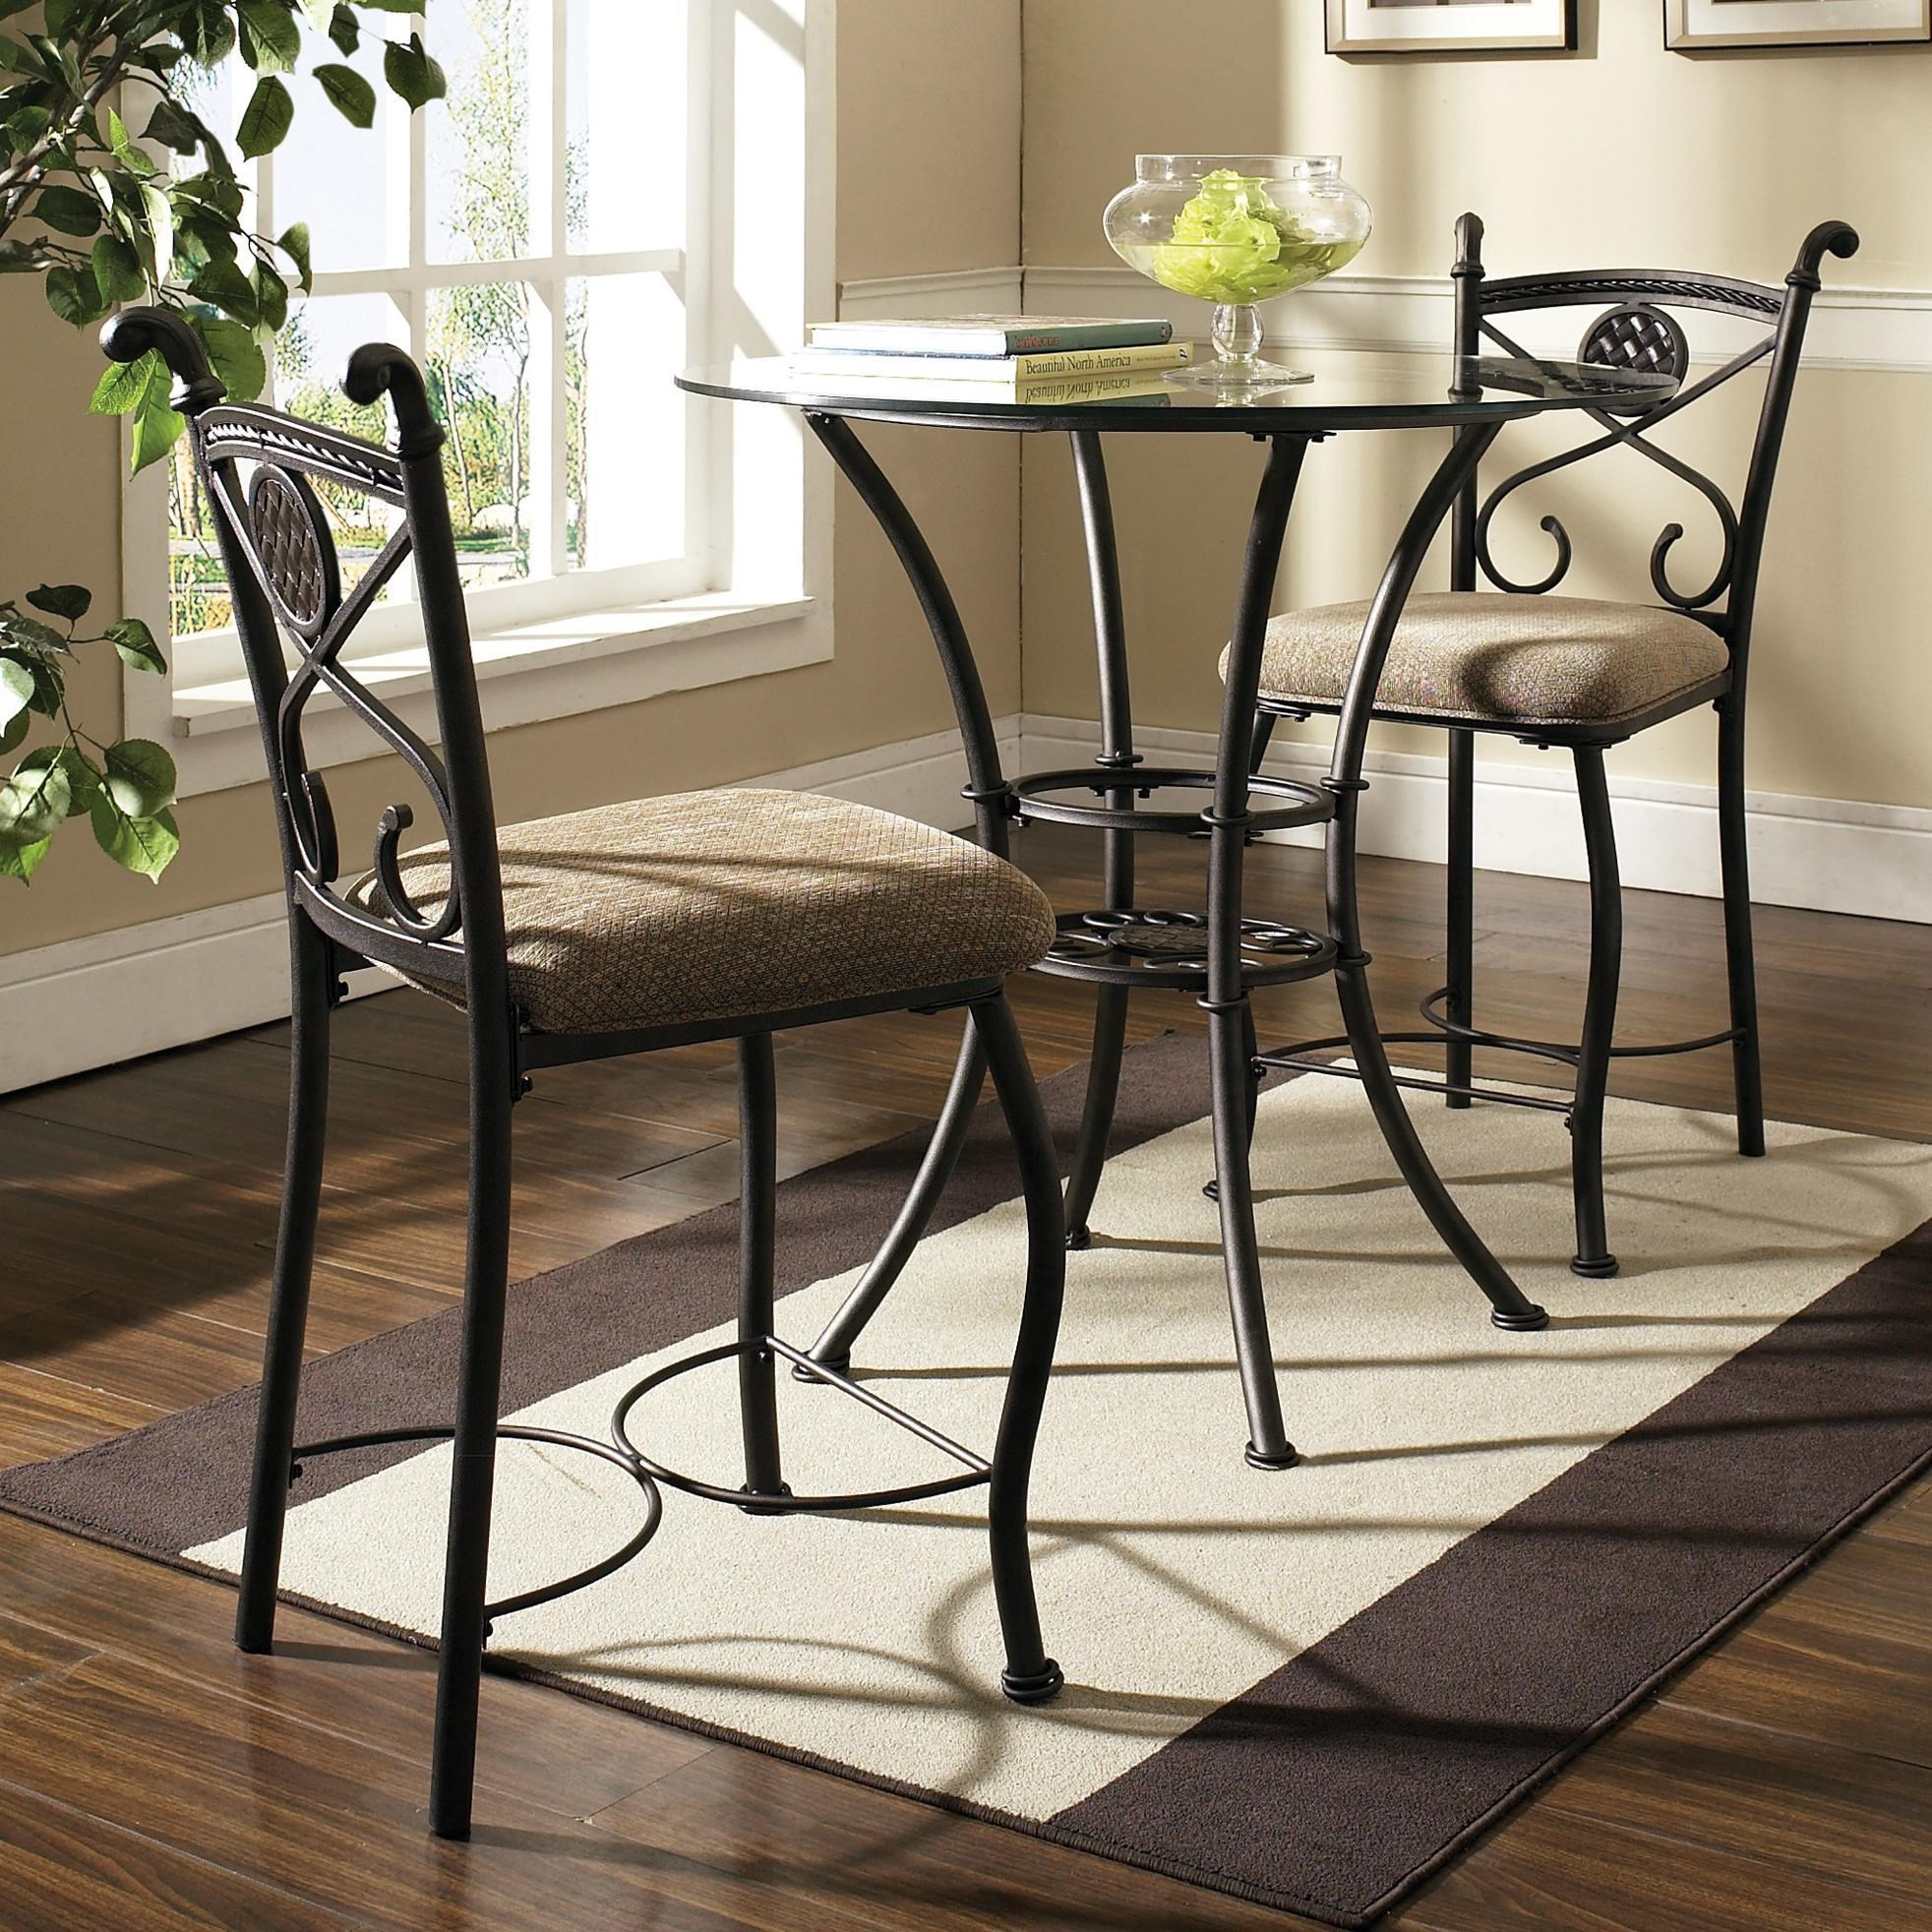 Steve Silver BrookfieldRound Glass Top Pub Table U0026 2 Counter Chairs ...